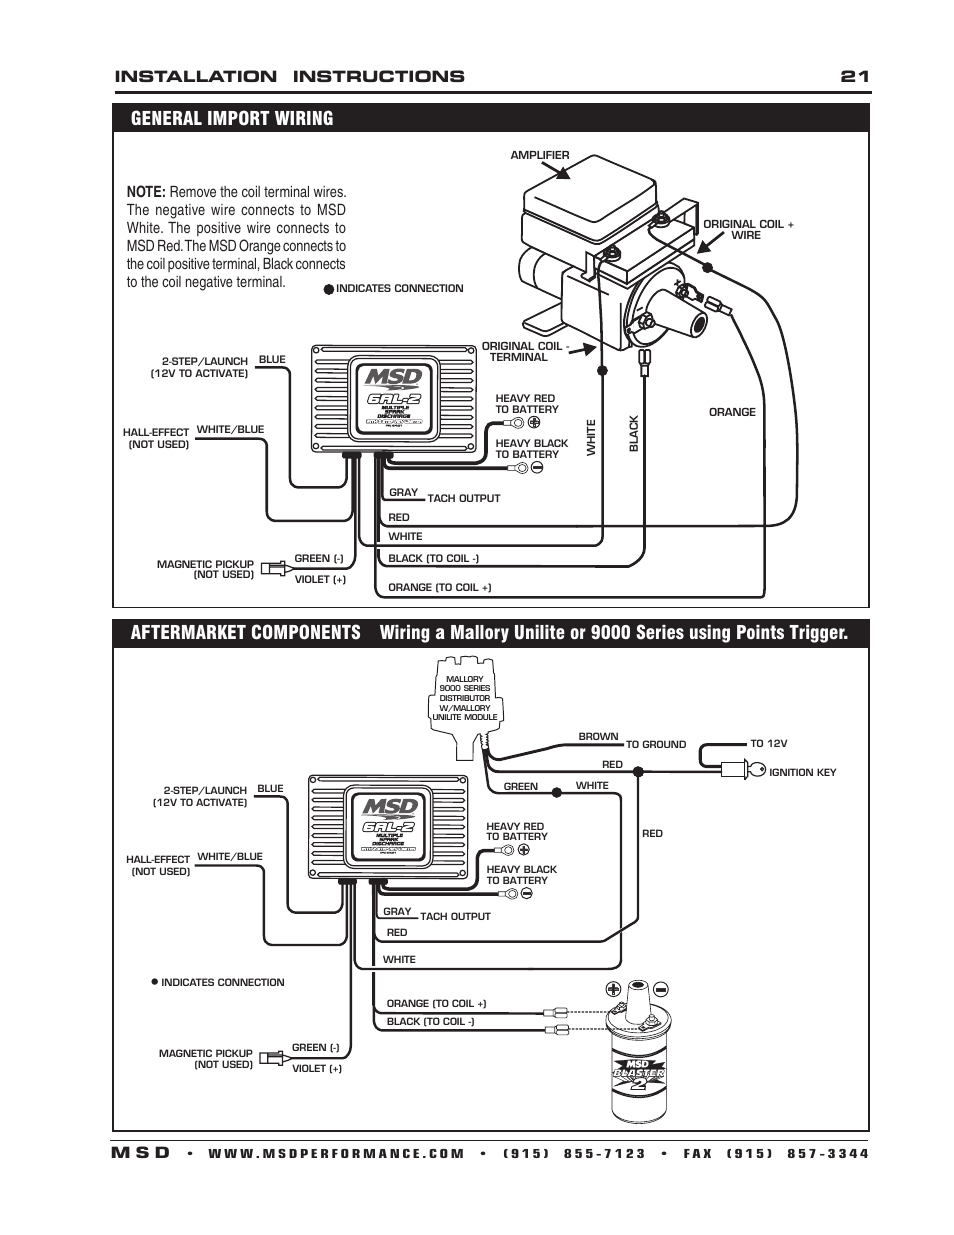 Msd 5 Wiring Diagram Using Points Trigger Mallory Ignition Msd Wiring Diagram on msd ignition coil, msd mounting, msd ignition installation, pertronix wiring diagram, typical ignition system diagram, meziere wiring diagram, msd ignition system, taylor wiring diagram, msd ford wiring diagrams, lokar wiring diagram, msd ignition connector, ford alternator wiring diagram, auto meter wiring diagram, smittybilt wiring diagram, msd 6a wiring-diagram, msd 2 step wiring-diagram, msd 7al box diagram, painless wiring wiring diagram, msd hei wiring-diagram, nos wiring diagram,